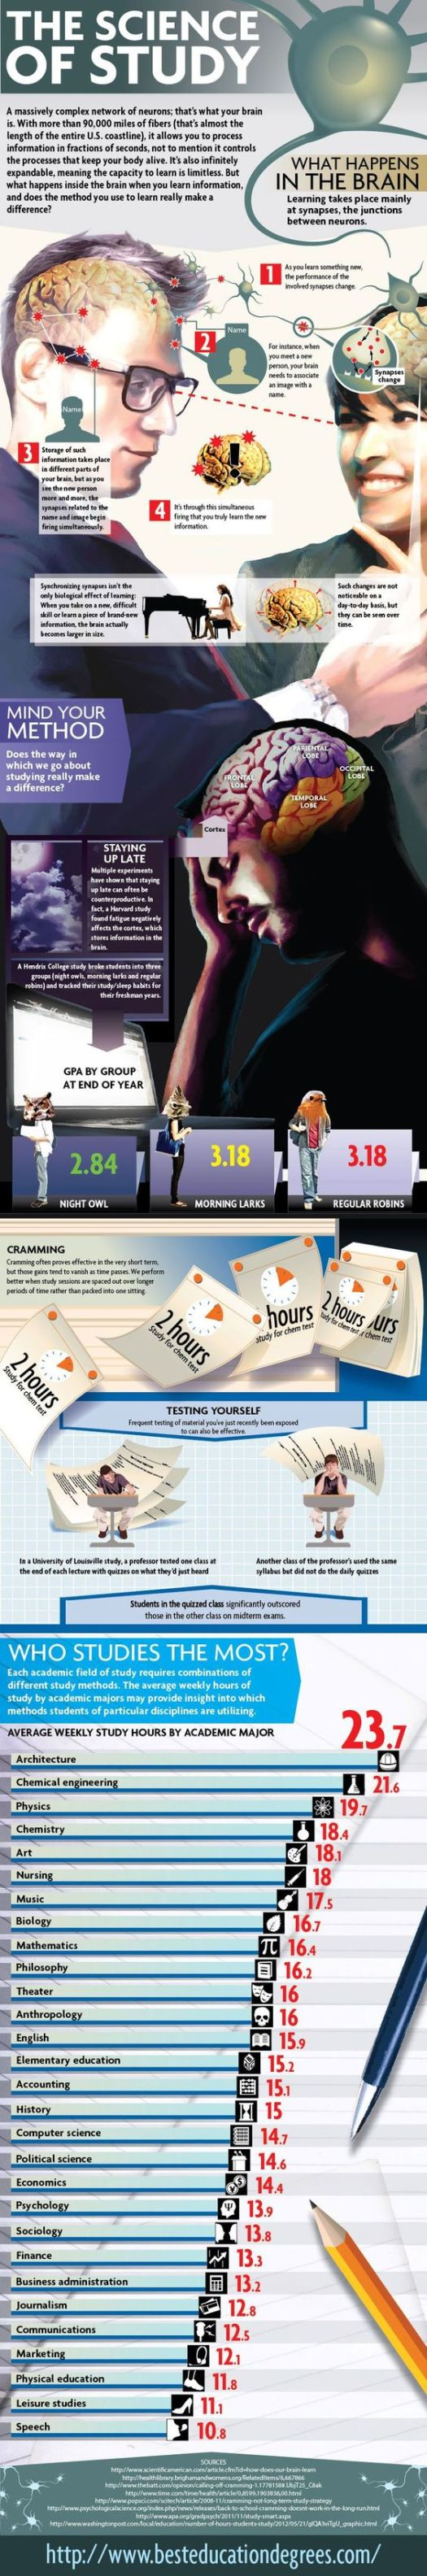 infographic the science of study